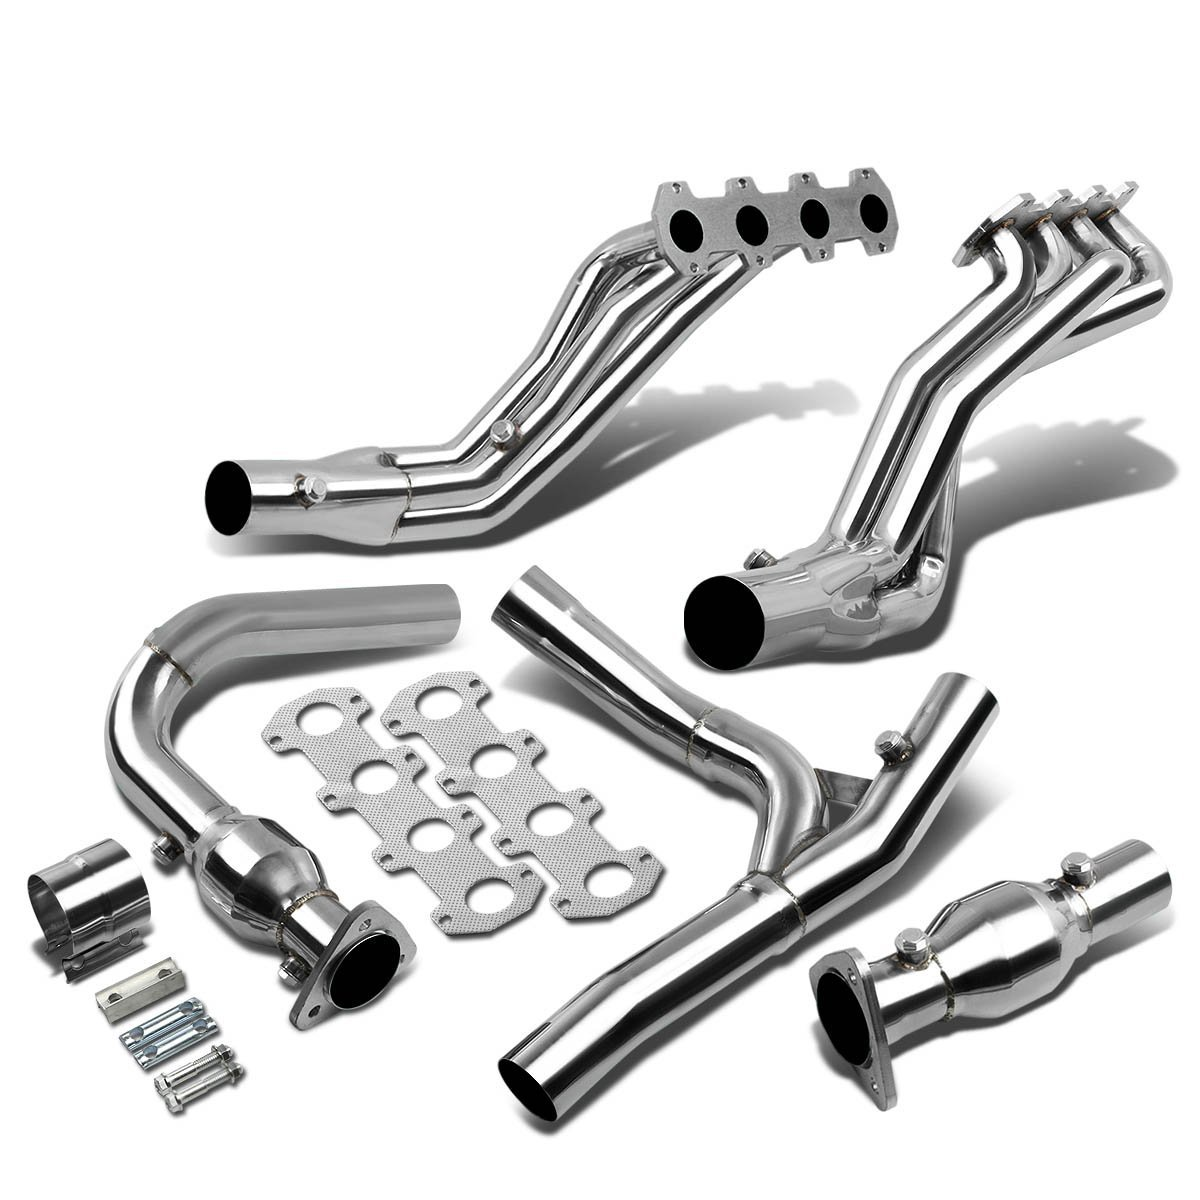 04-08 Ford F-150 / F150 Xlt / Fx4 5.4L V8 Stainless Racing ...